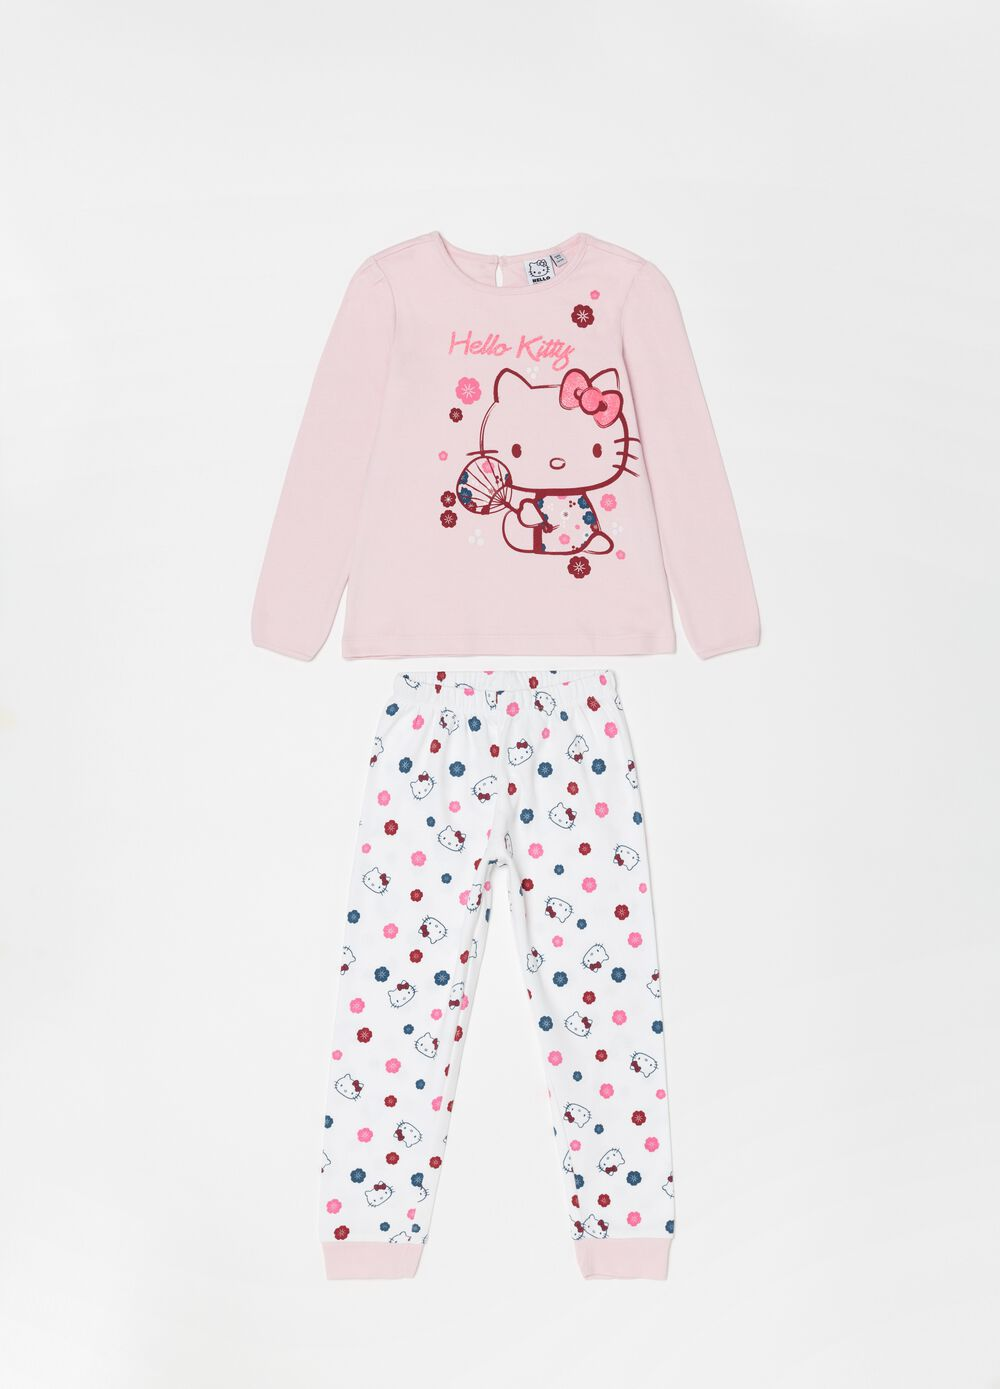 100% cotton Hello Kitty pyjamas